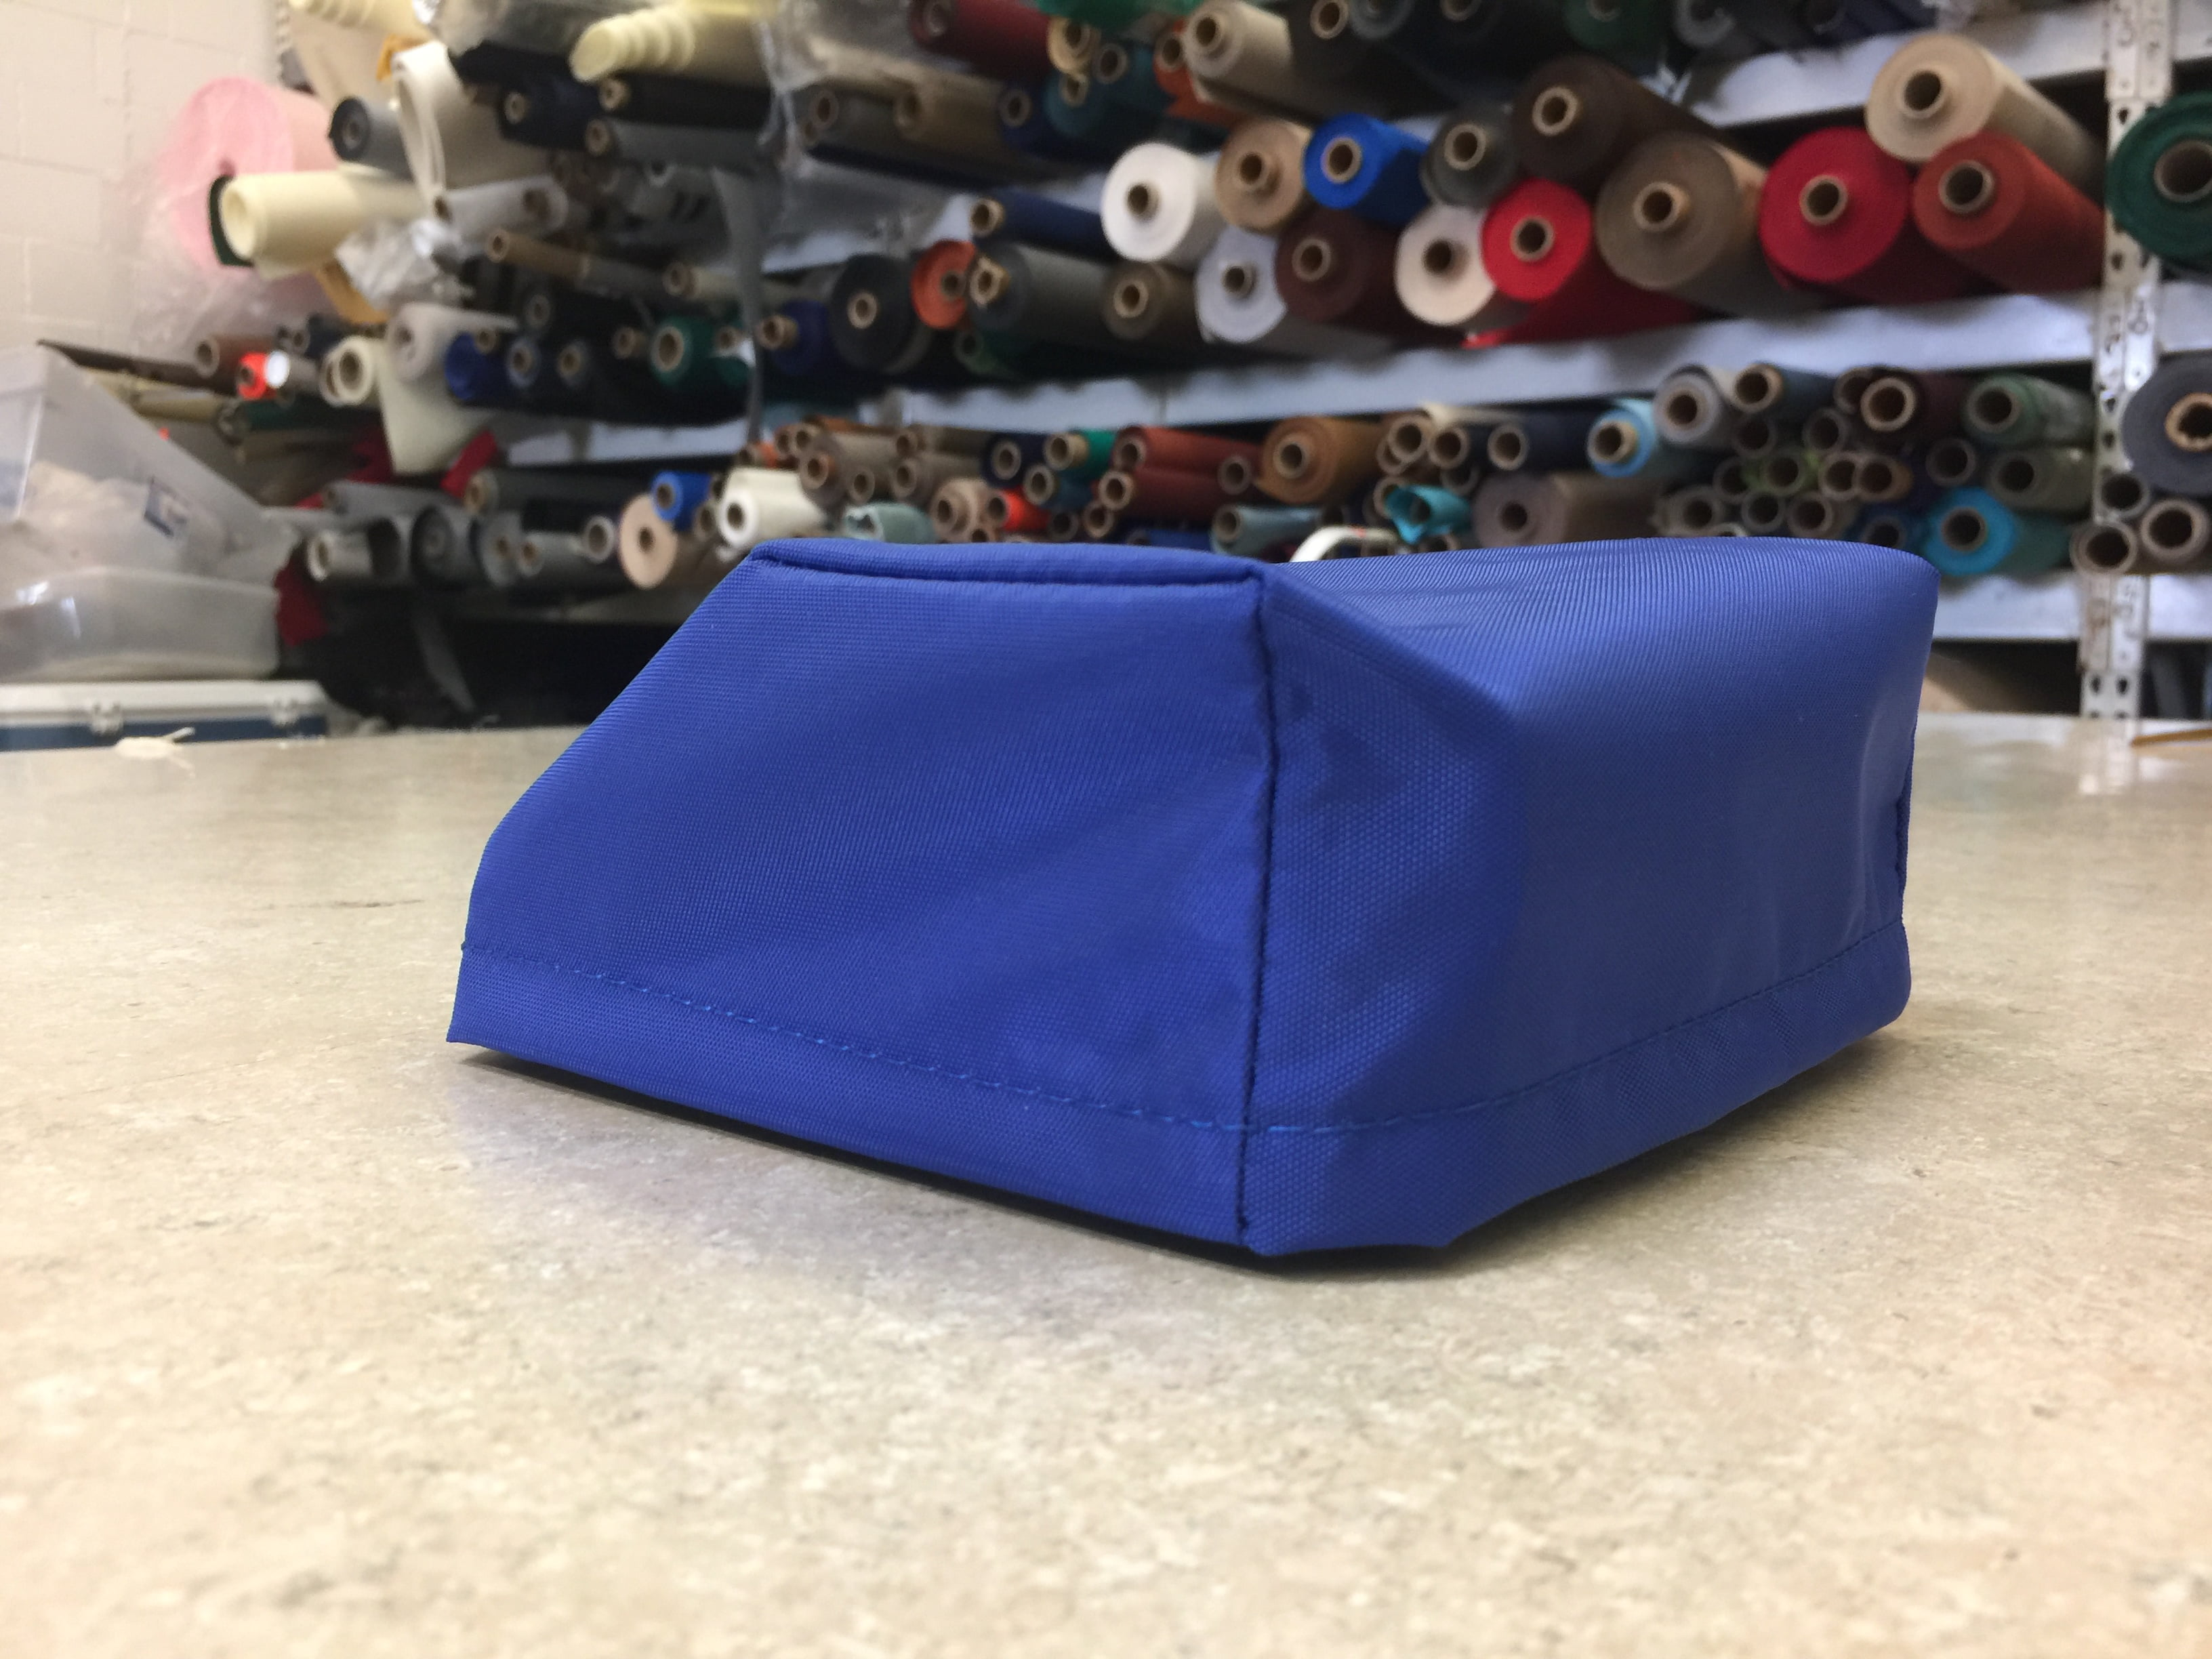 Equipment cover_Nylon_Royal blue